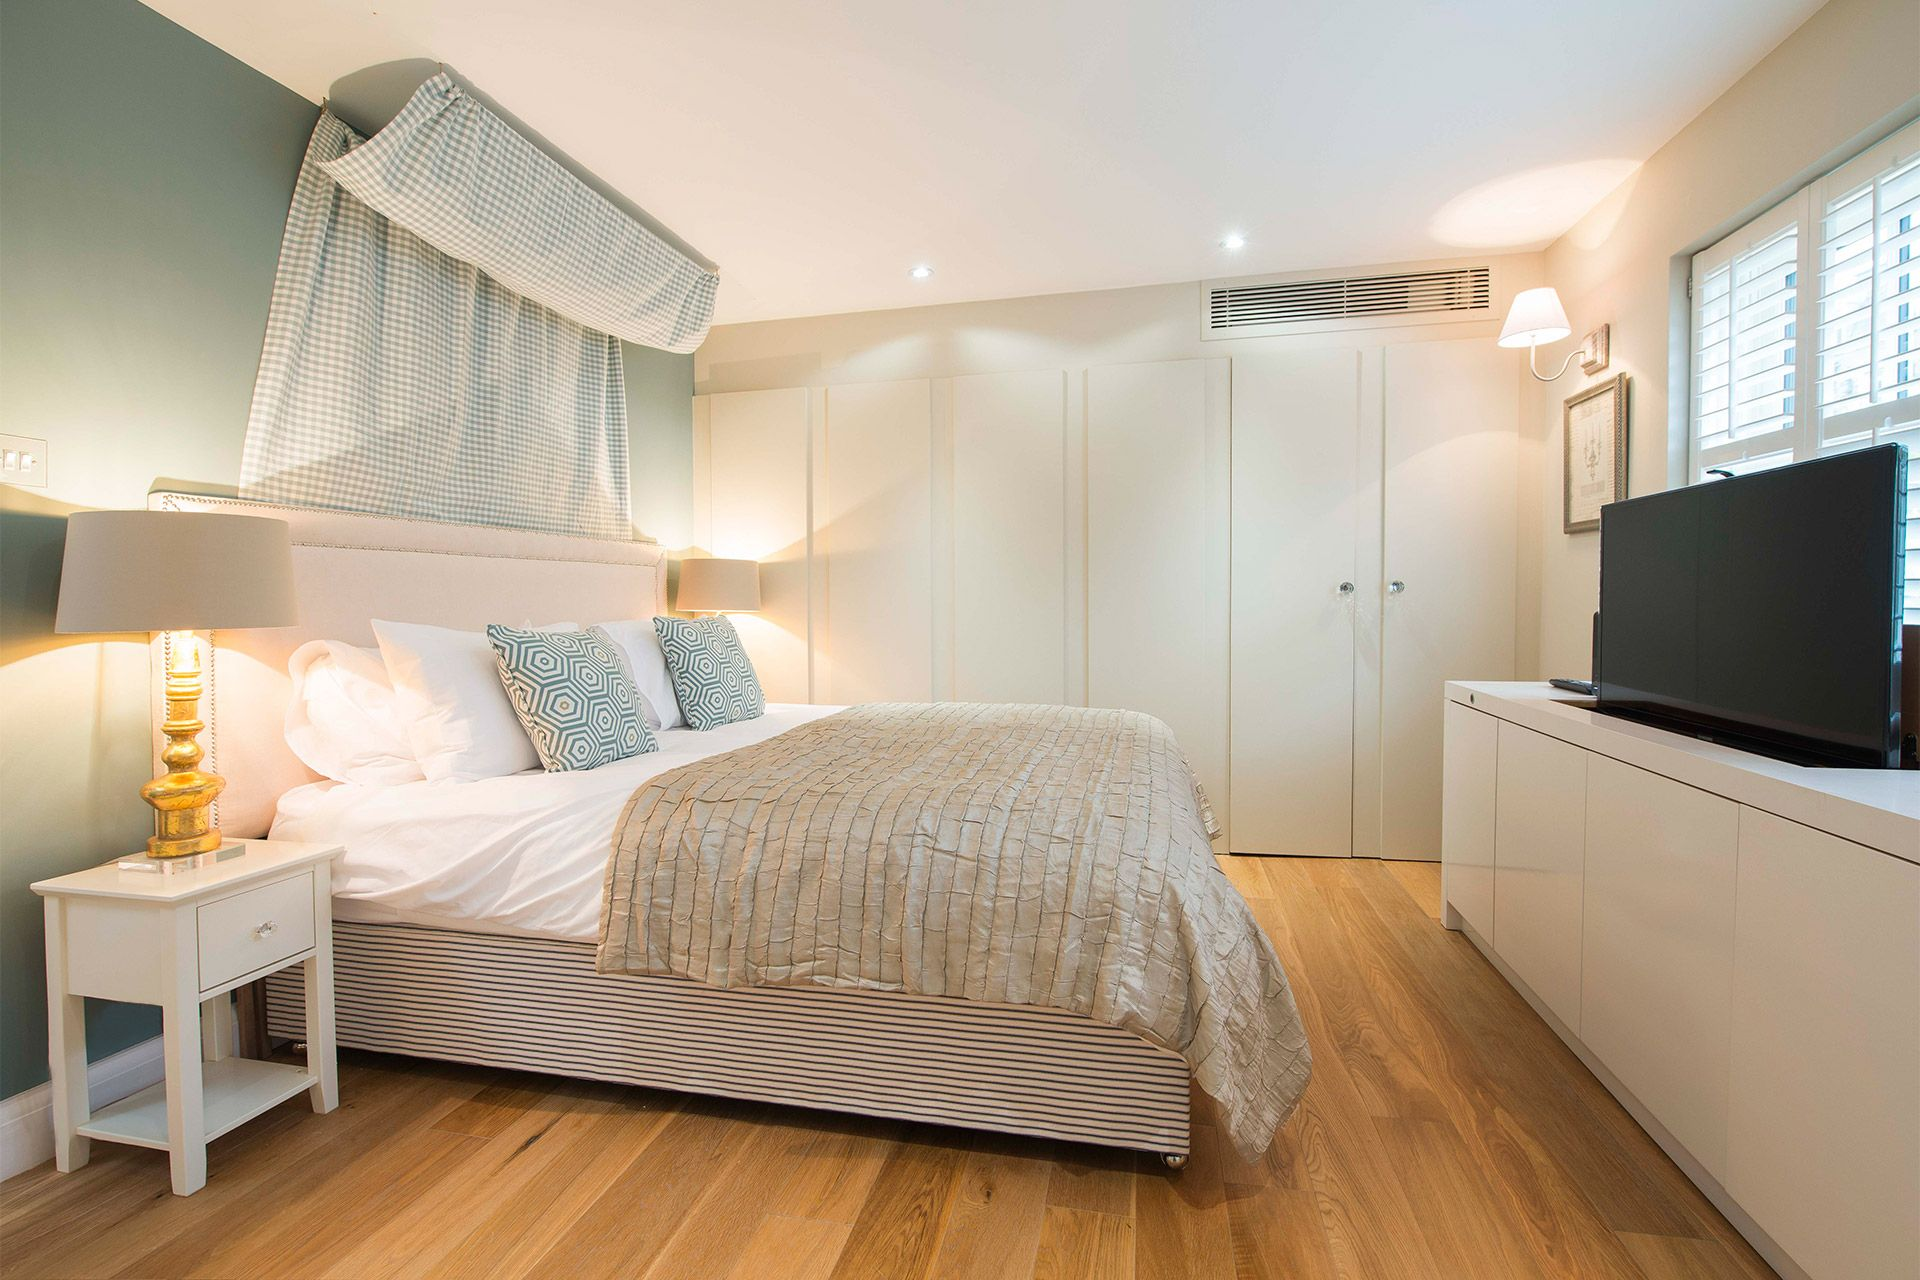 Flat screen TV in the Master bedroom of the Eldon vacation rental offered by London Perfect